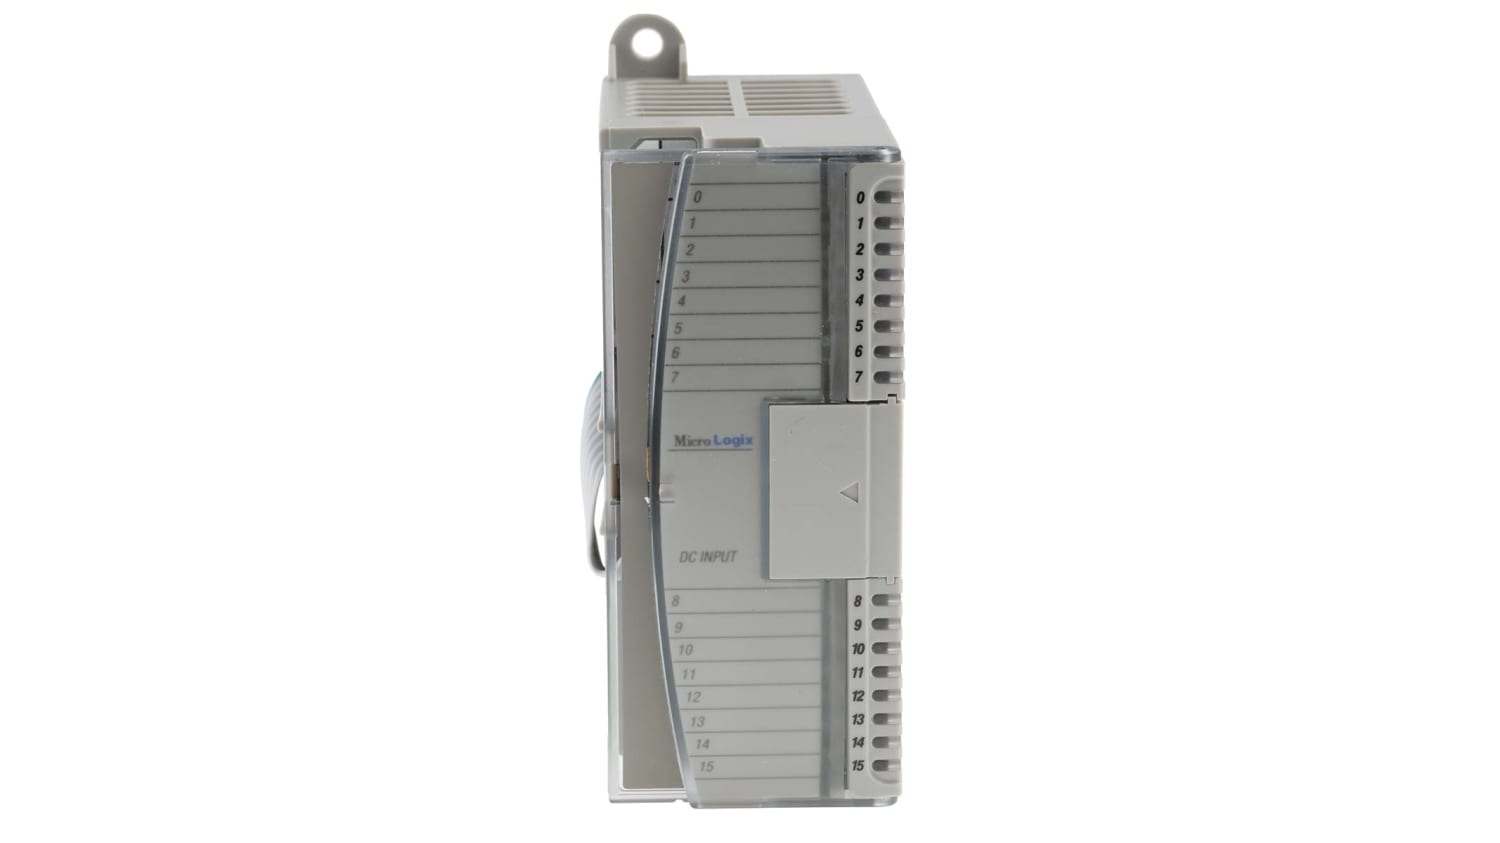 1762 Iq16 Allen Bradley Plc I O Module For Use With Micrologix 1100 Series Micrologix 1200 Series Micrologix 1400 Series 87 Rs Components